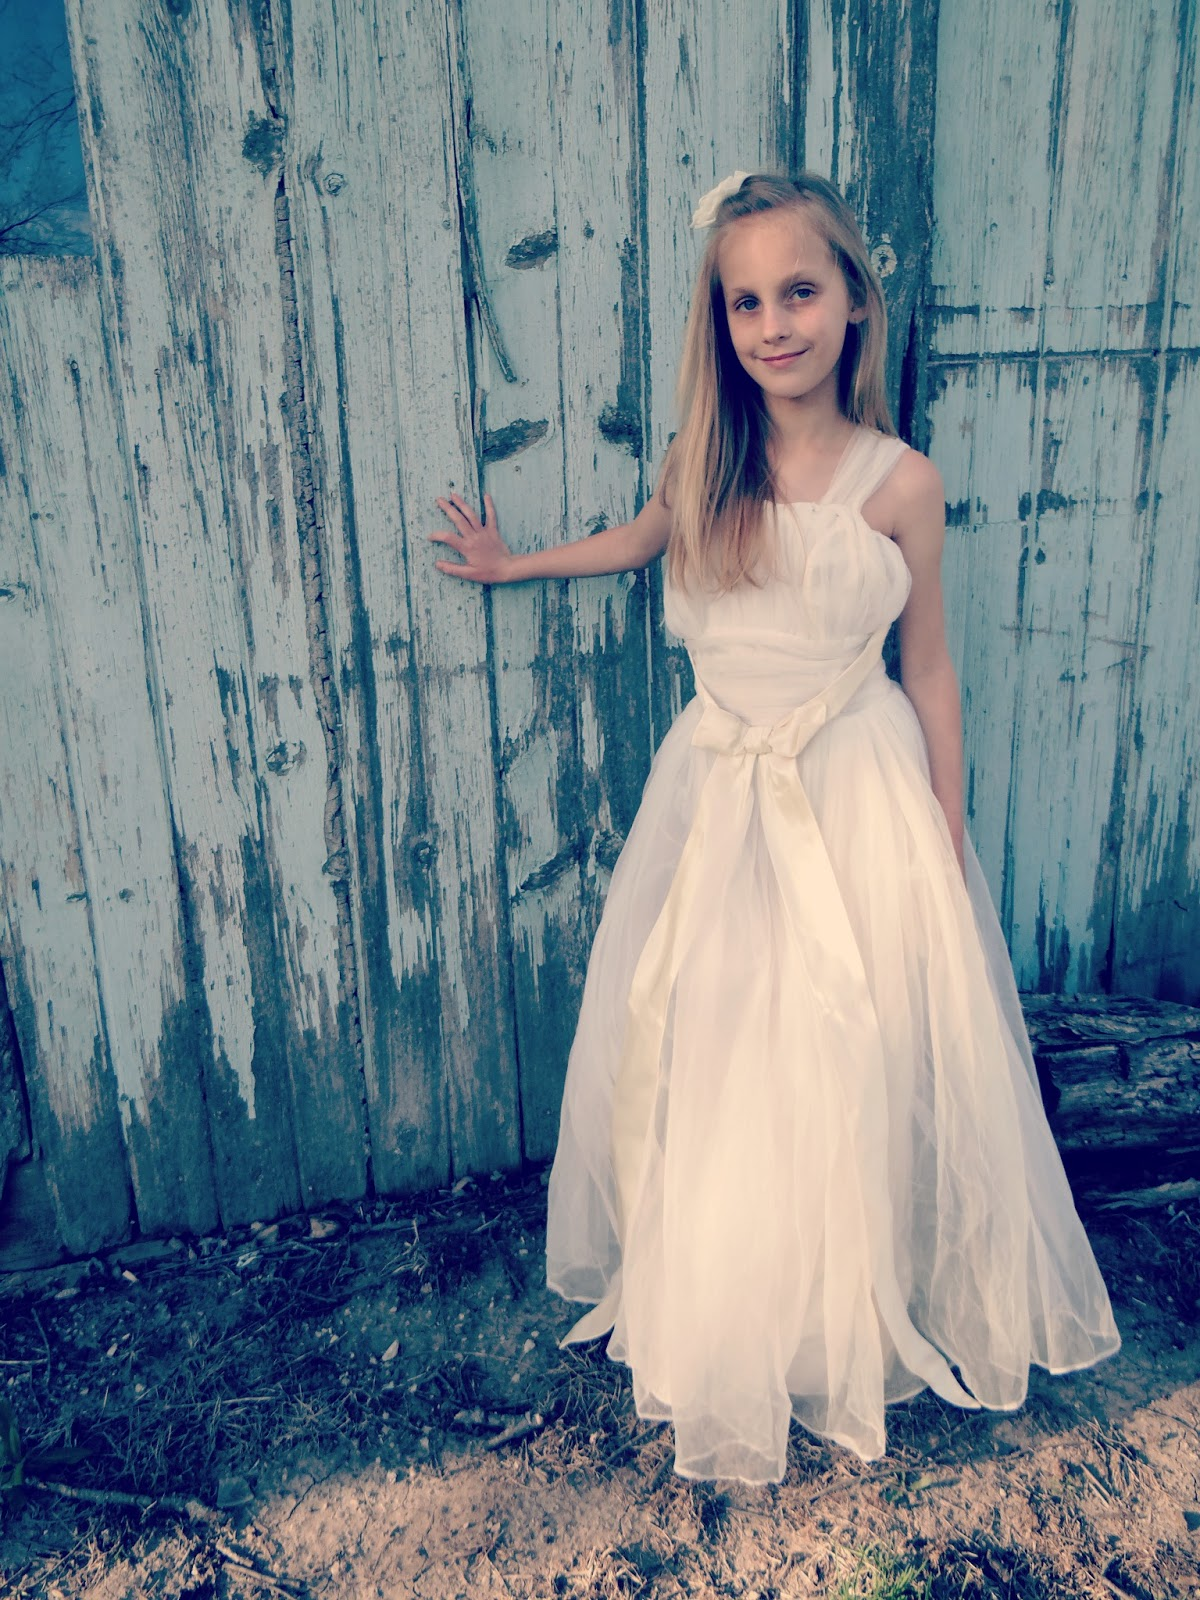 Wedding Dresses For Grandma : Moriah in her great grandma alberta sue mcnamar s wedding dress